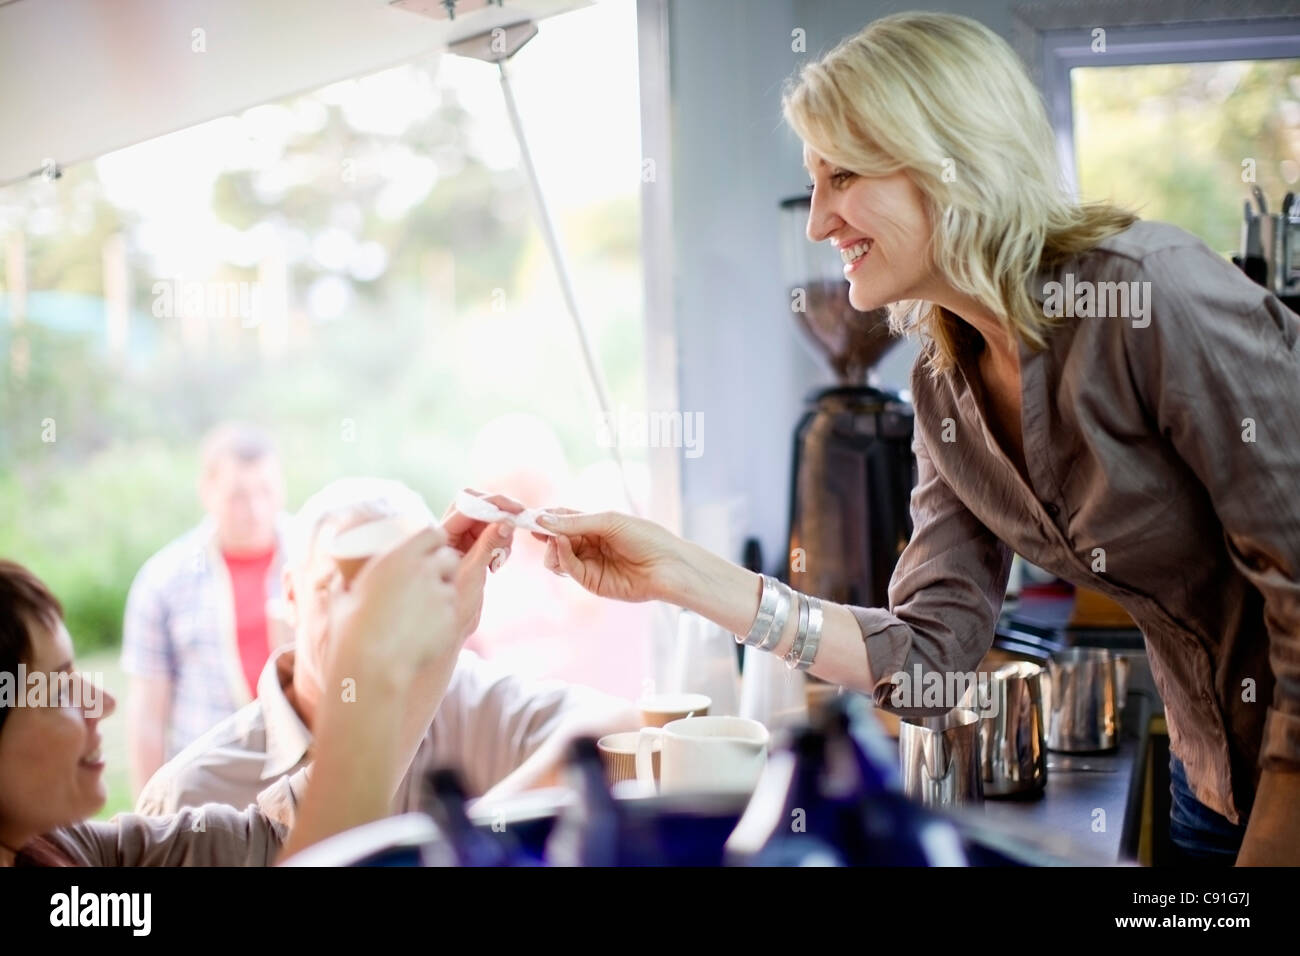 Woman serving coffee in food cart - Stock Image